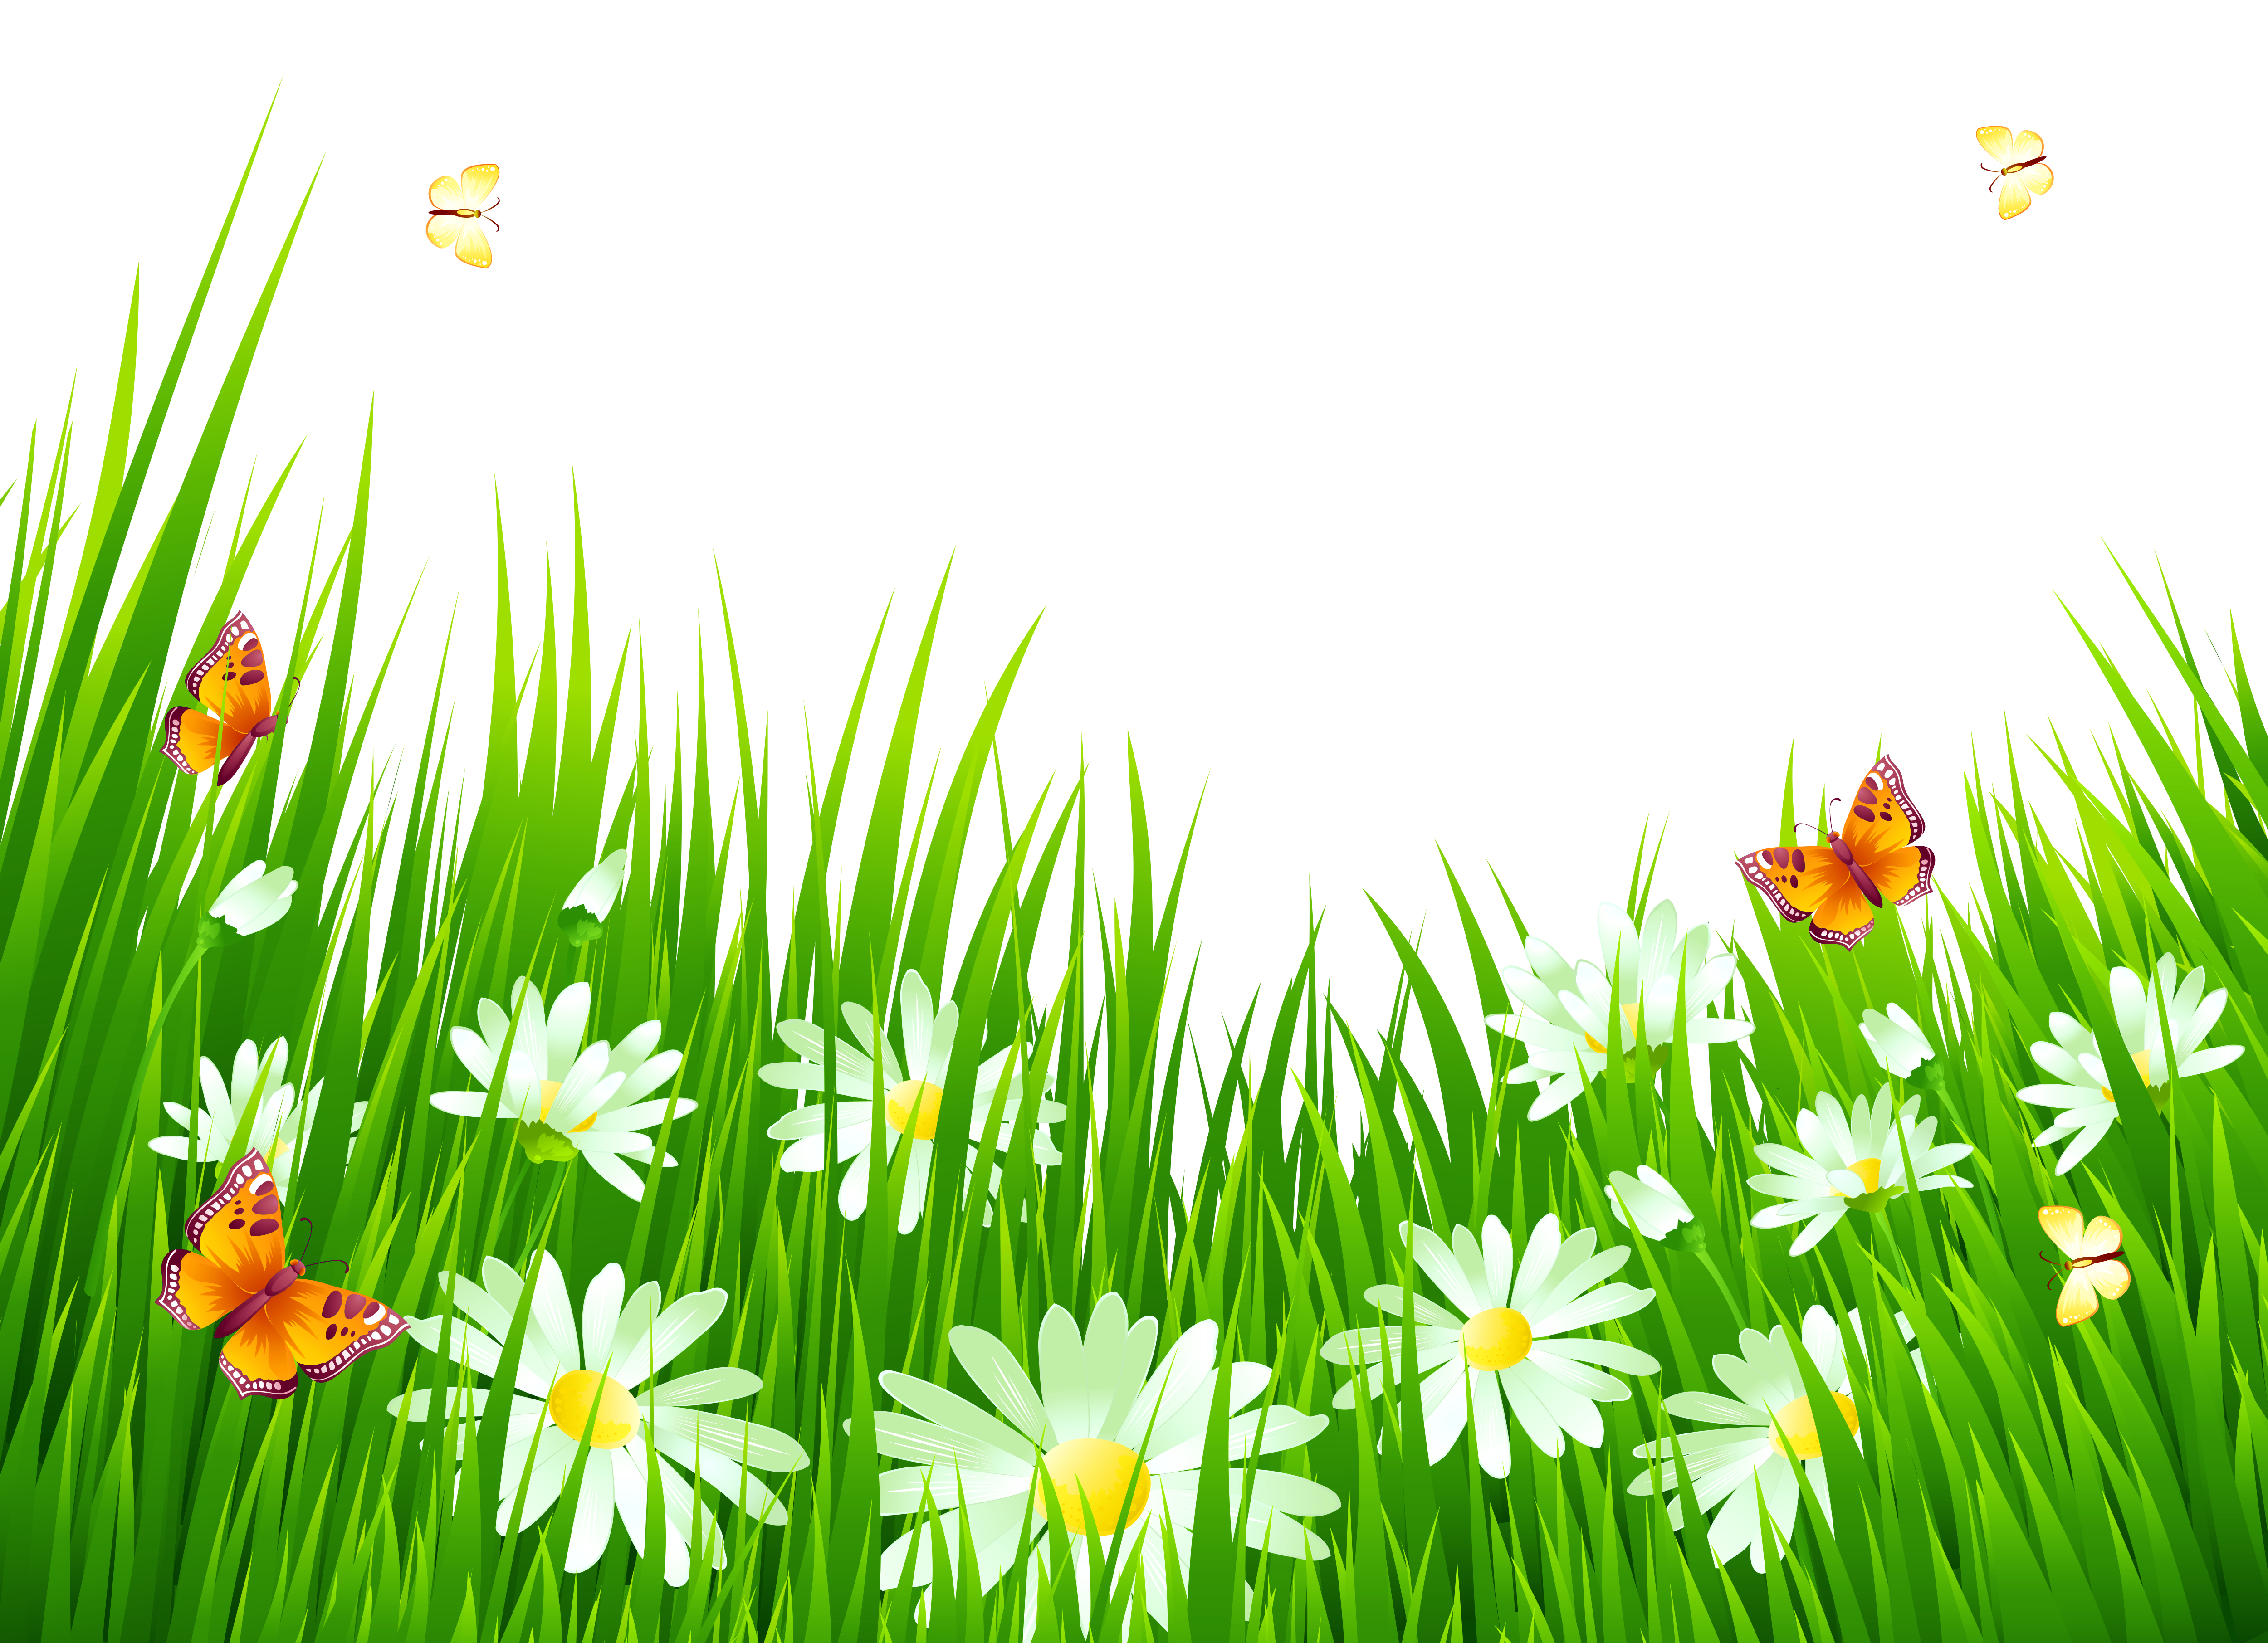 Flower clipart grass. With white flowers png